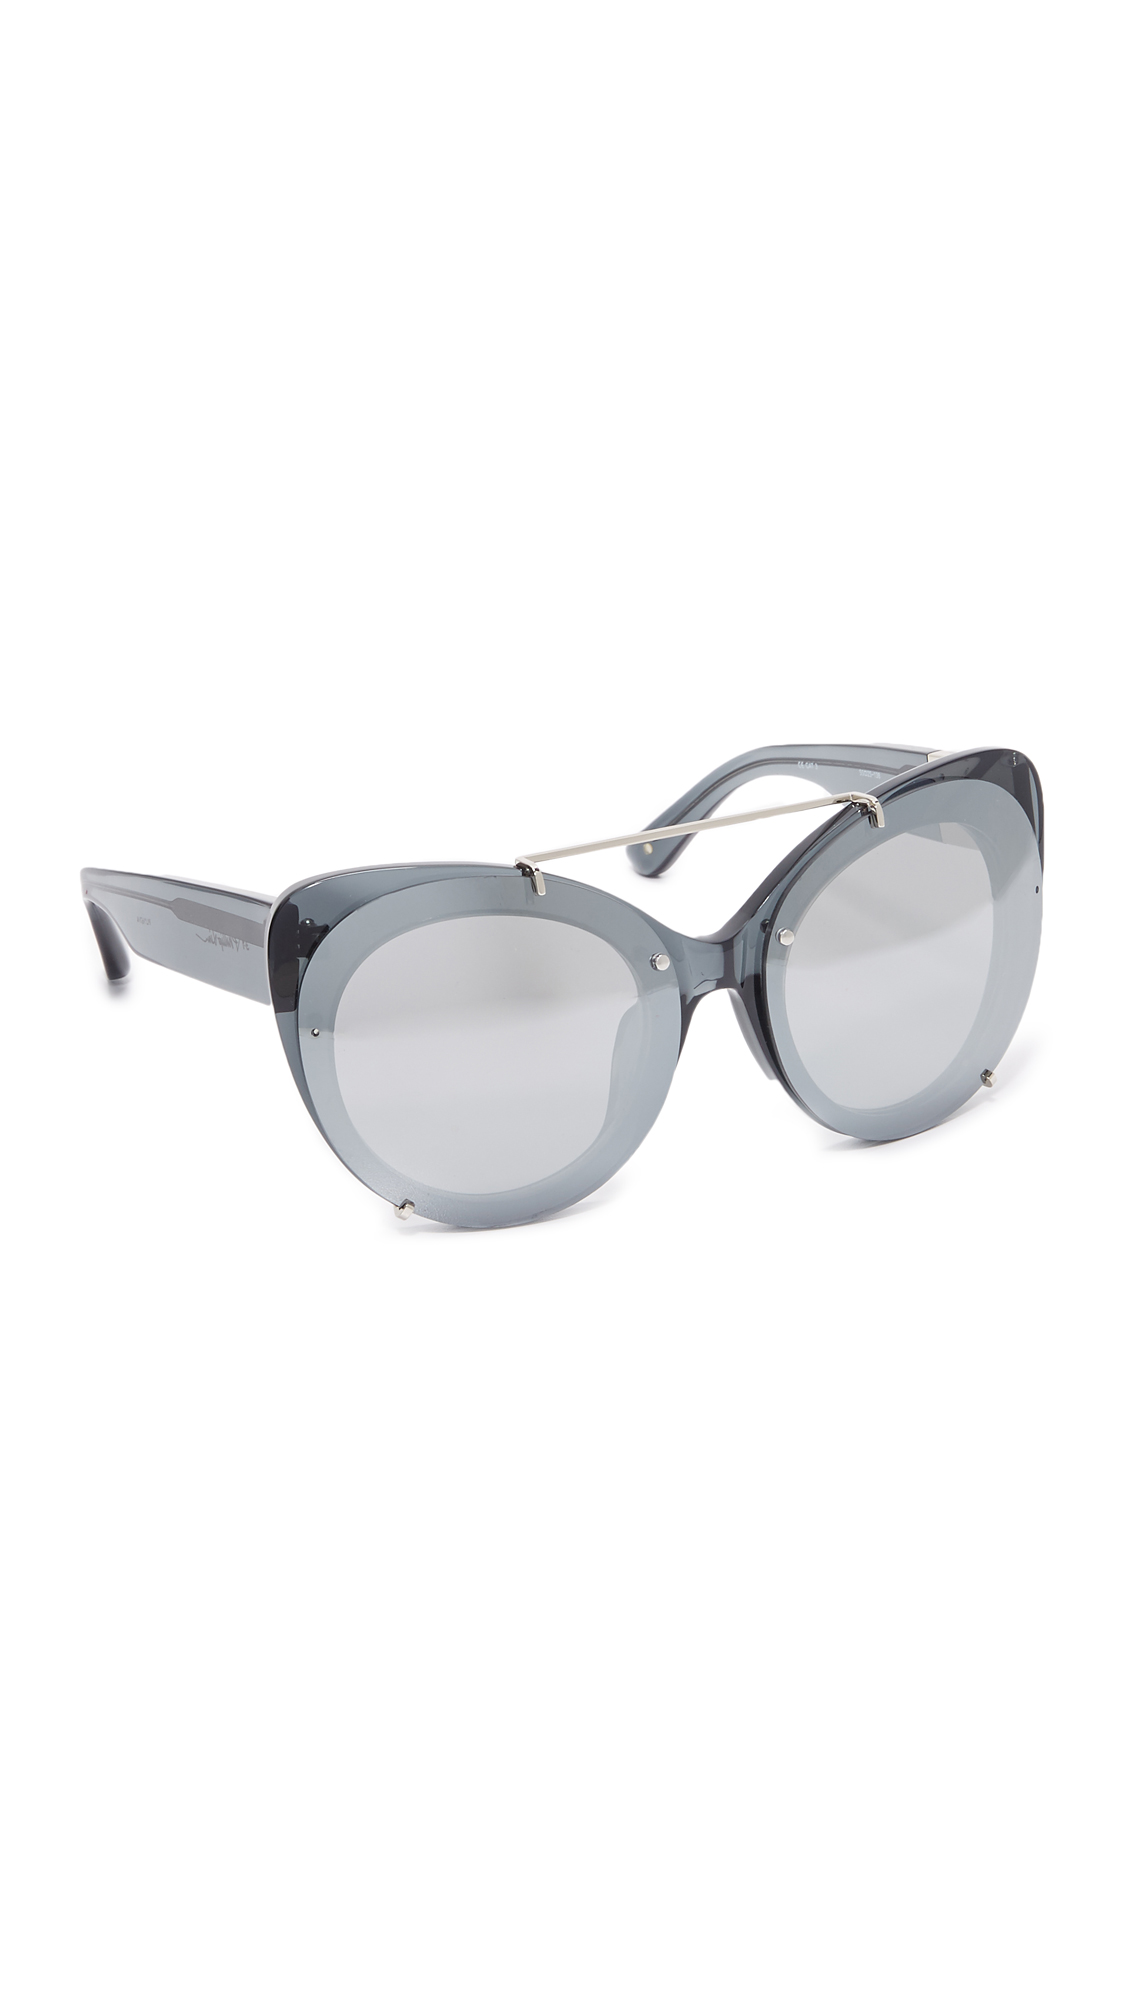 Oversized, cat eye 3.1 Phillip Lim sunglasses with raised, mirrored lenses. Soft pouch included. Cateye frame. Non polarized lenses. Imported, Japan. Measurements Width: 6in / 15.5cm Height: 2.25in / 6cm Lens Width: 55mm A manufacturer's warranty for this item